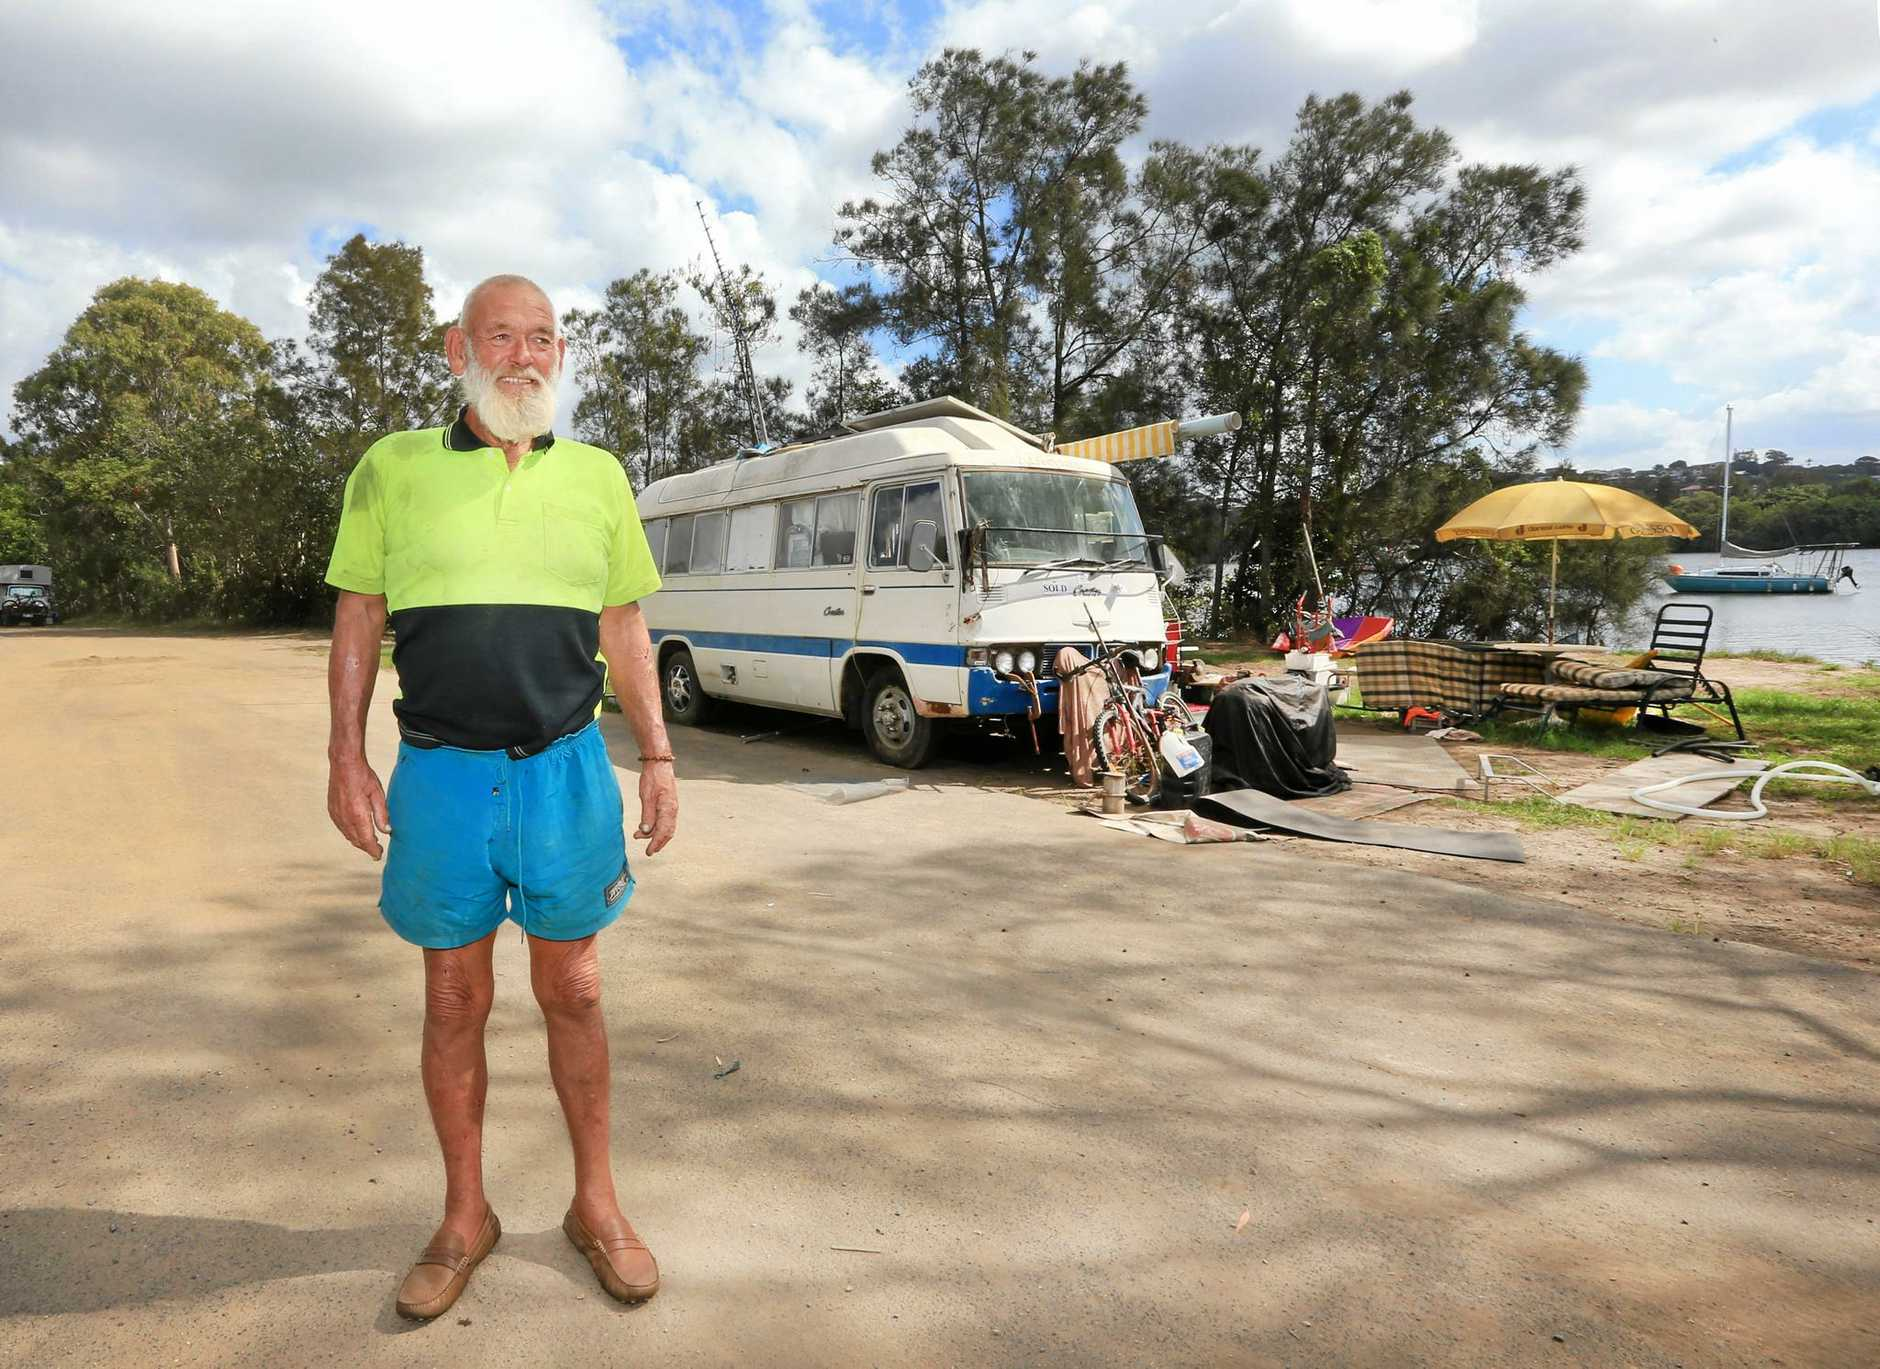 A run of terrible luck has left Poppa Bill Short with few options but to live on the banks of the Tweed River in his Coaster.